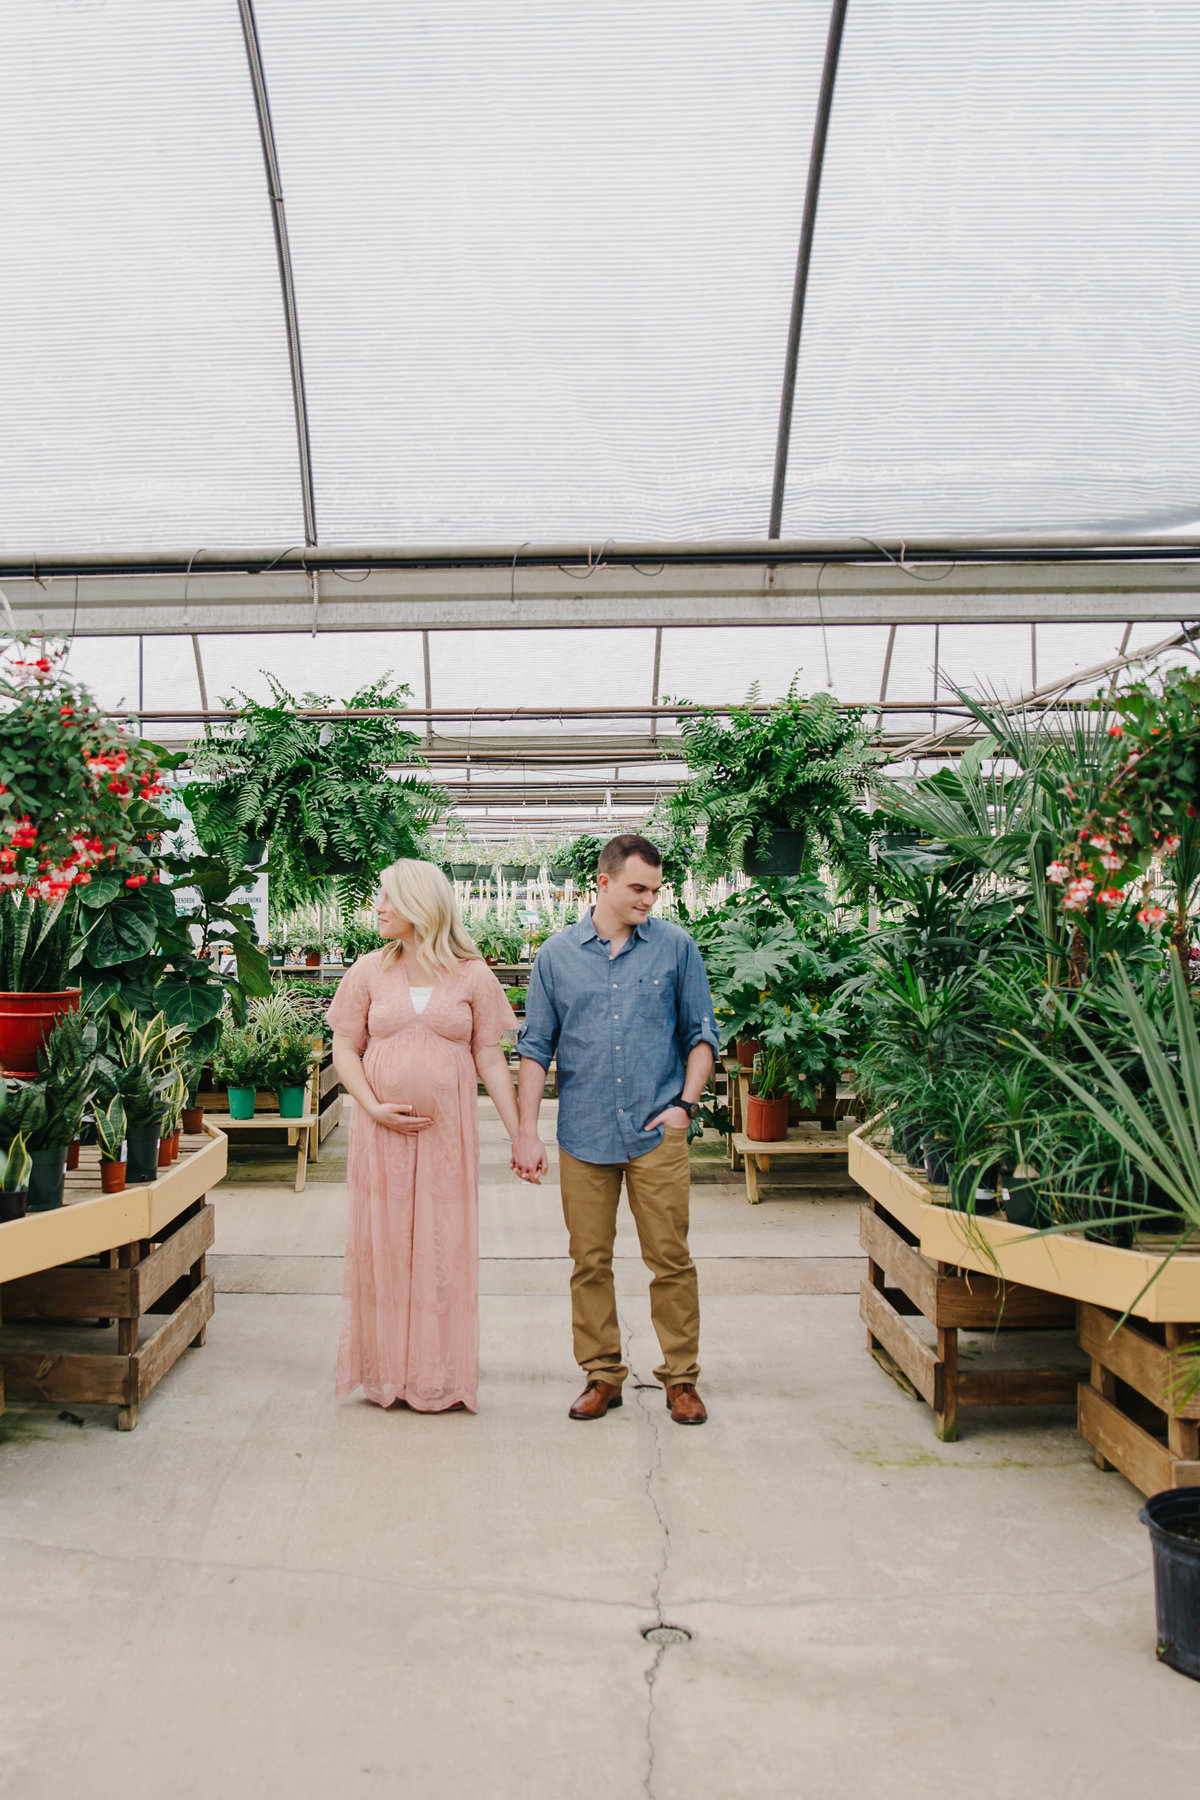 greenhouse-maternity-photography-session-raleigh-2590